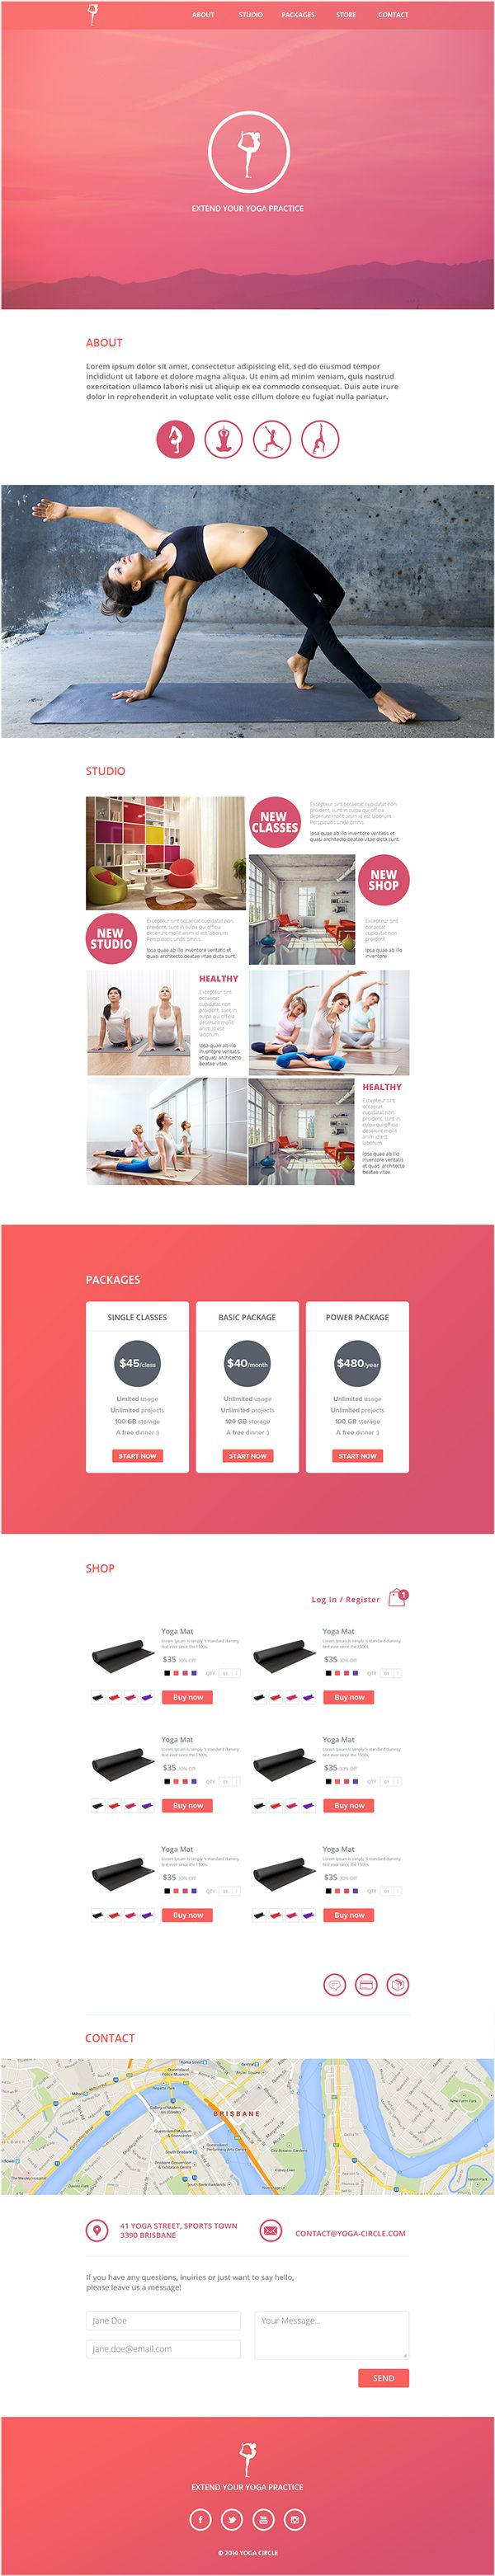 365 best Yoga Studio Website Design images on Pinterest | Design ...